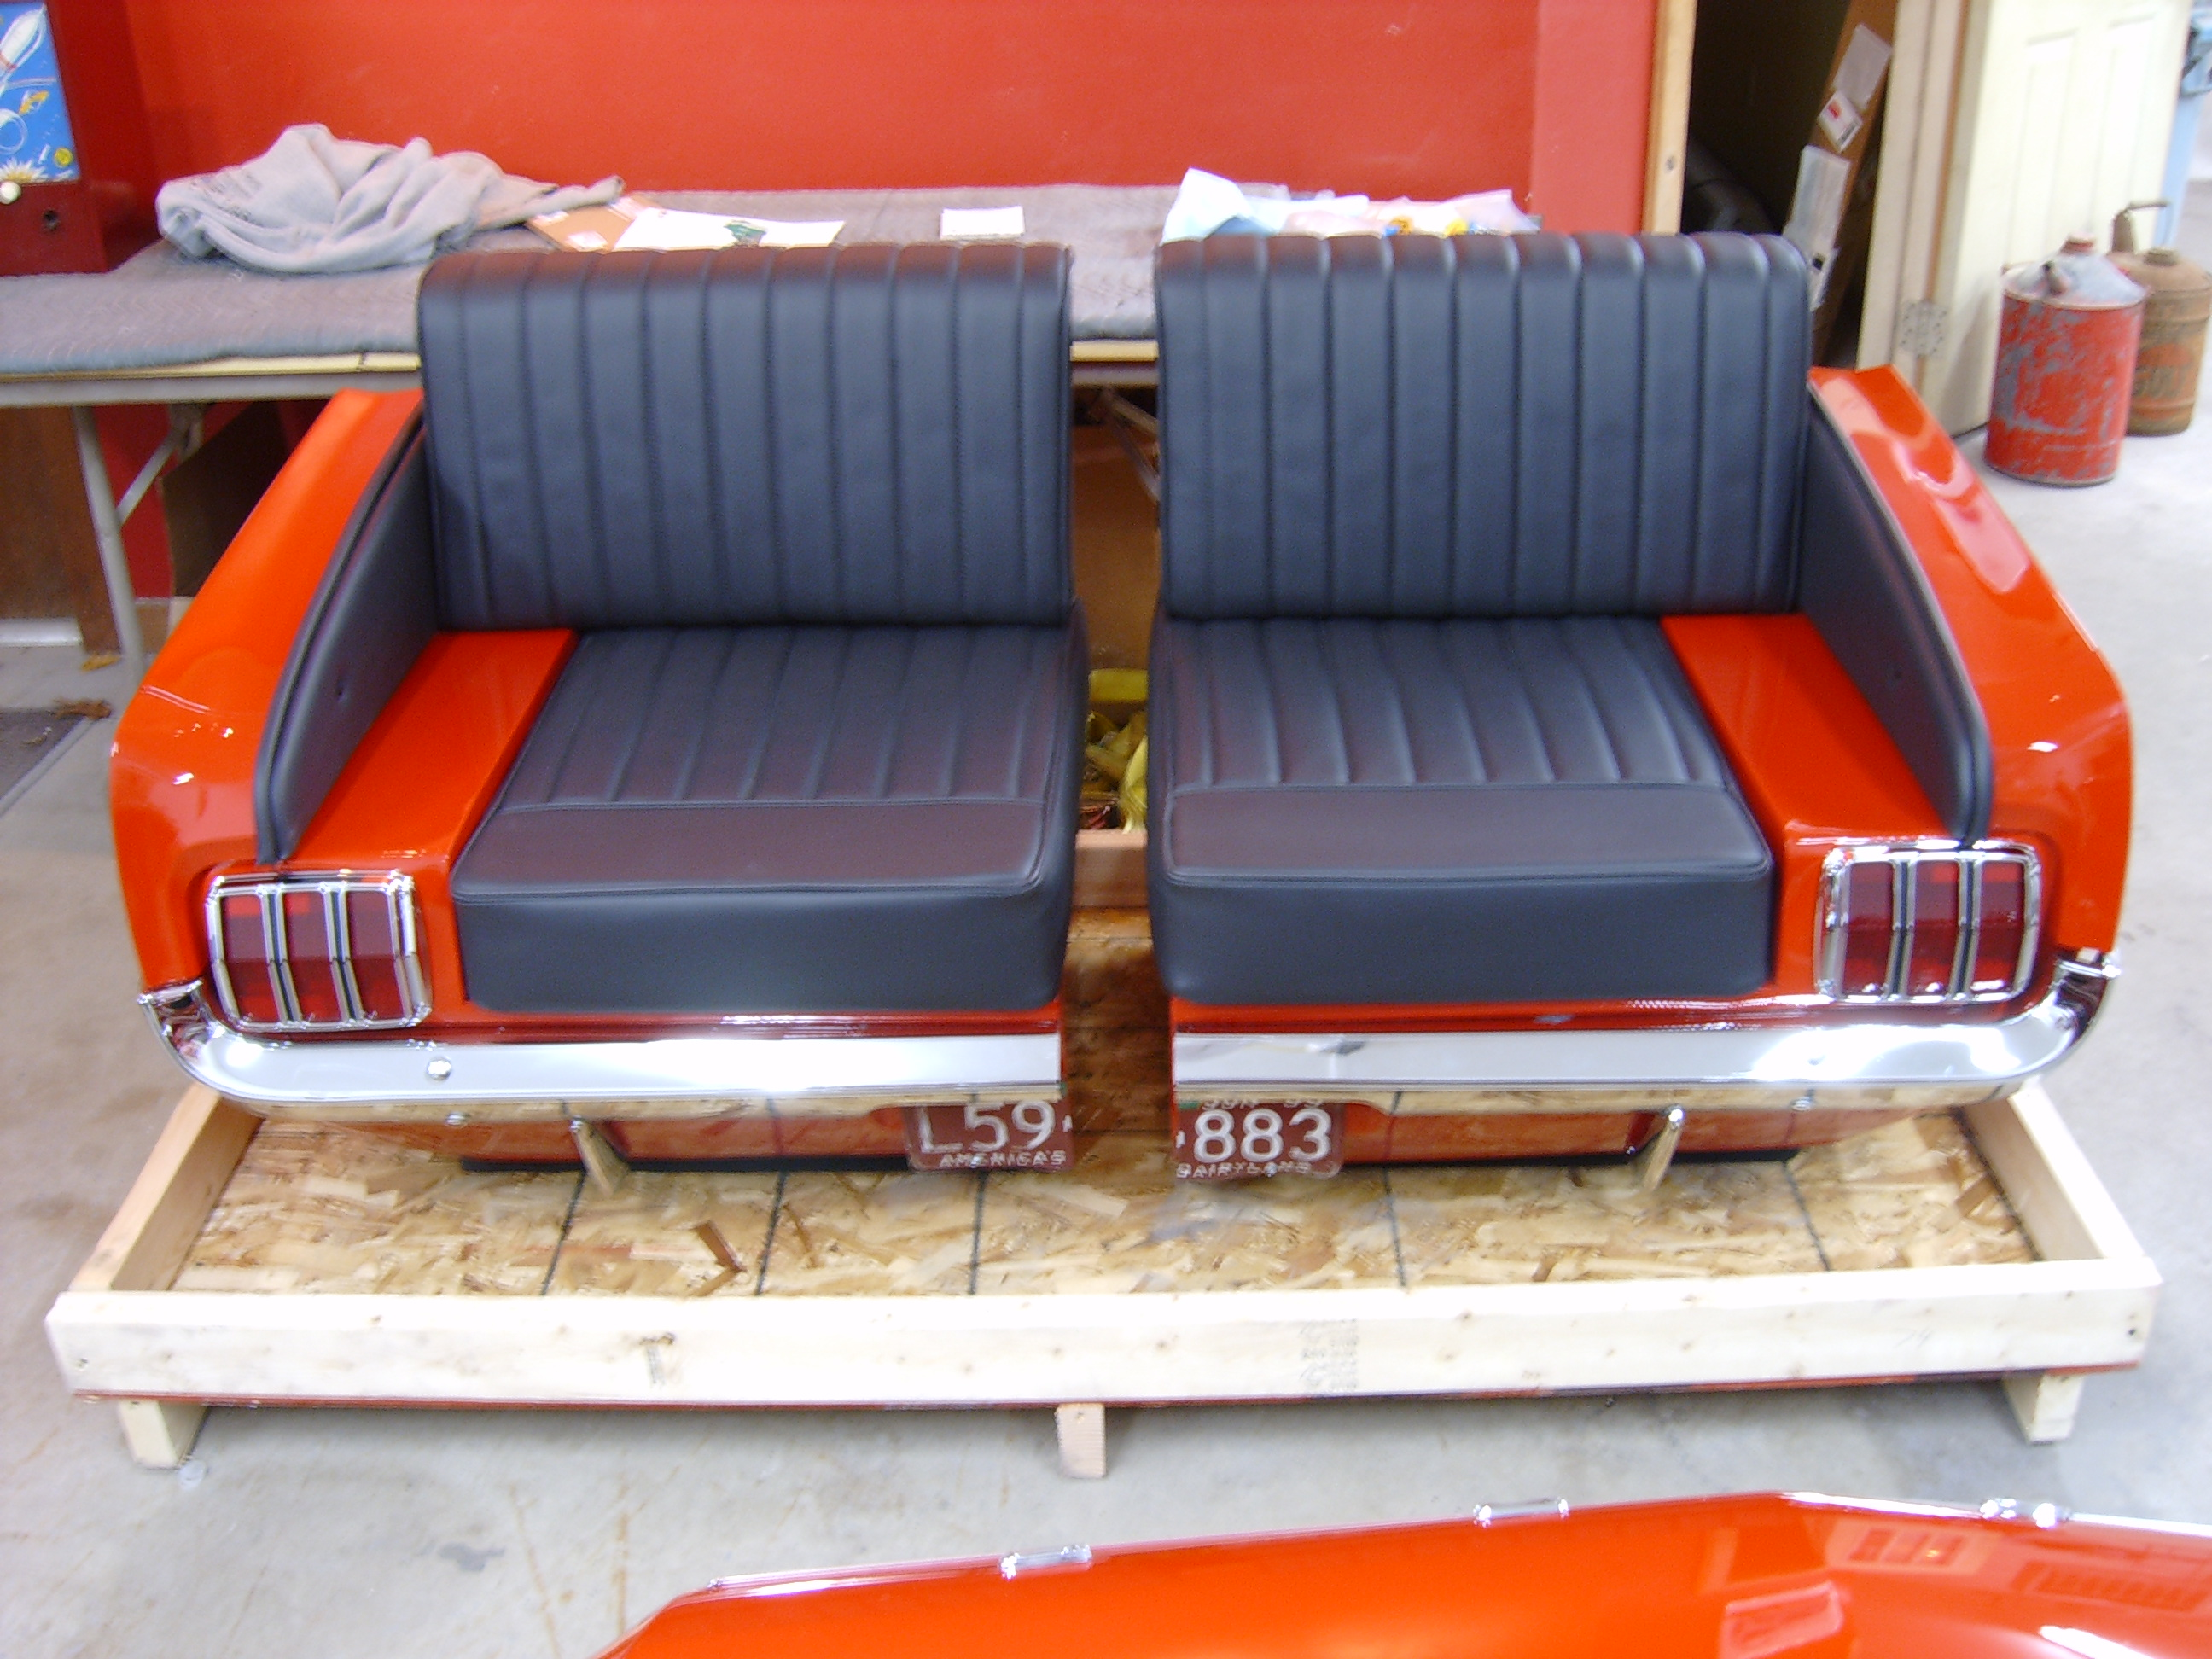 New retro cars restored classic car furniture and decor for Furniture made from cars